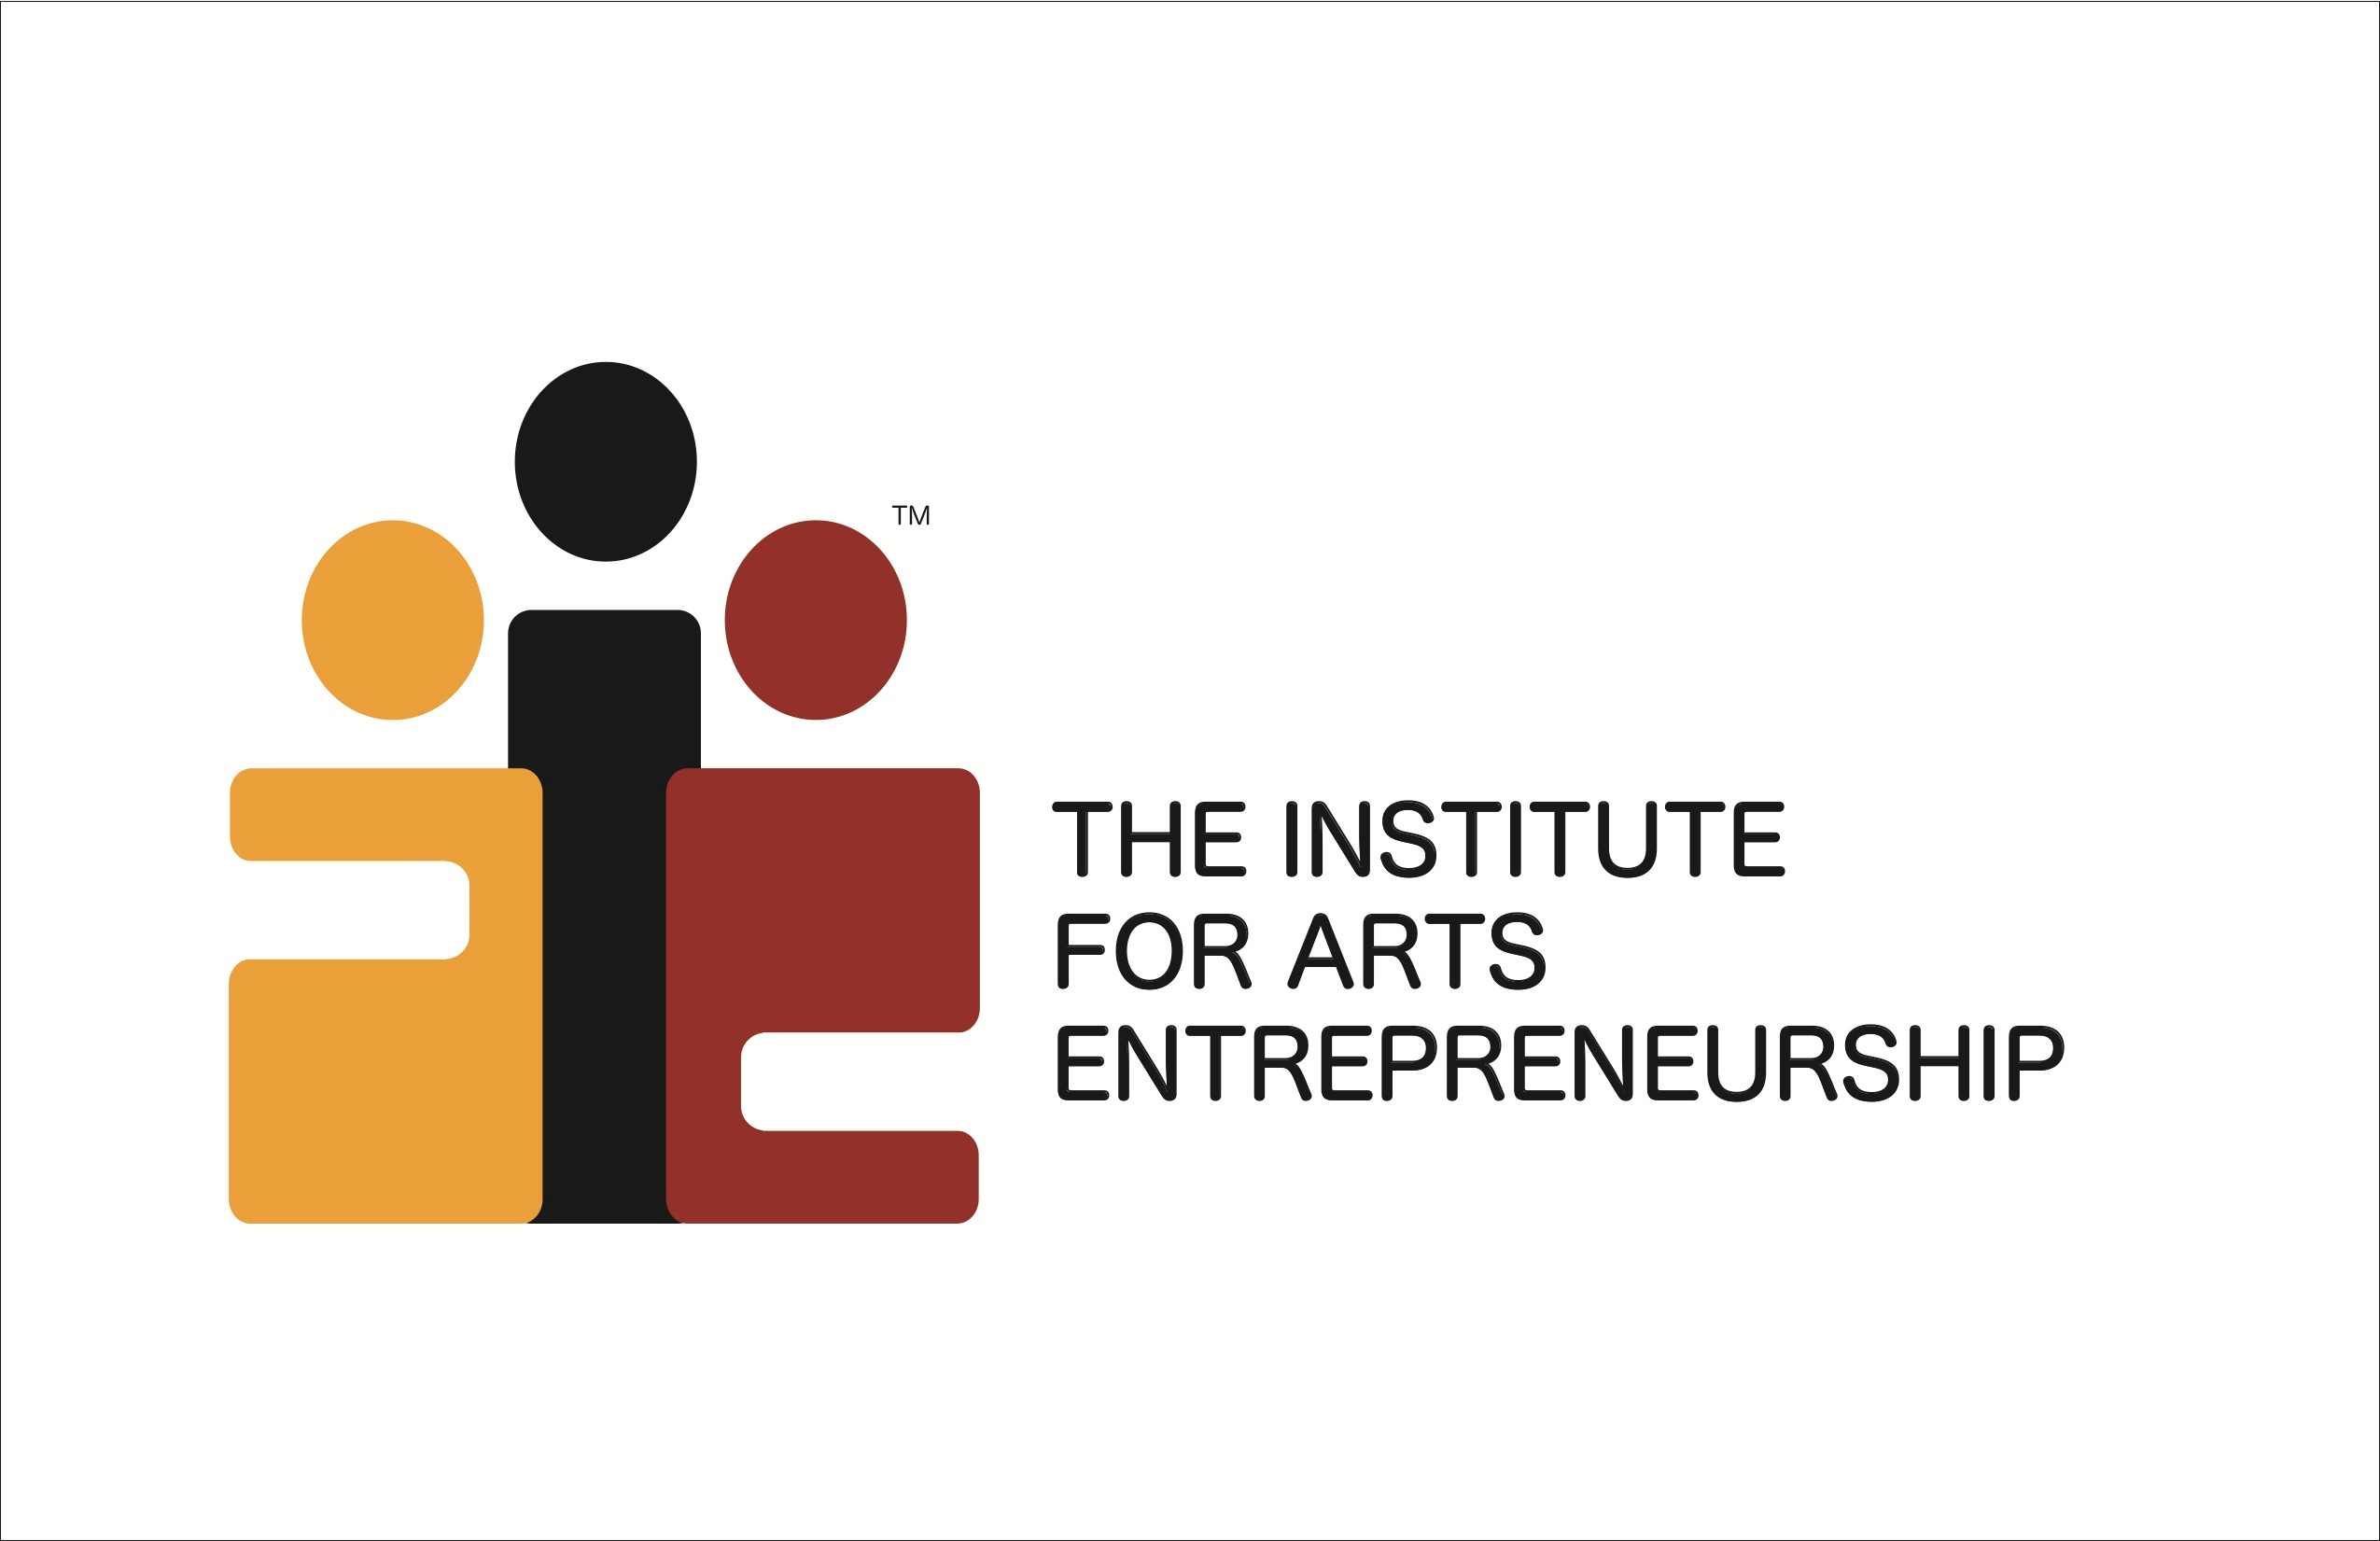 The Institute for Arts Entrepreneurship